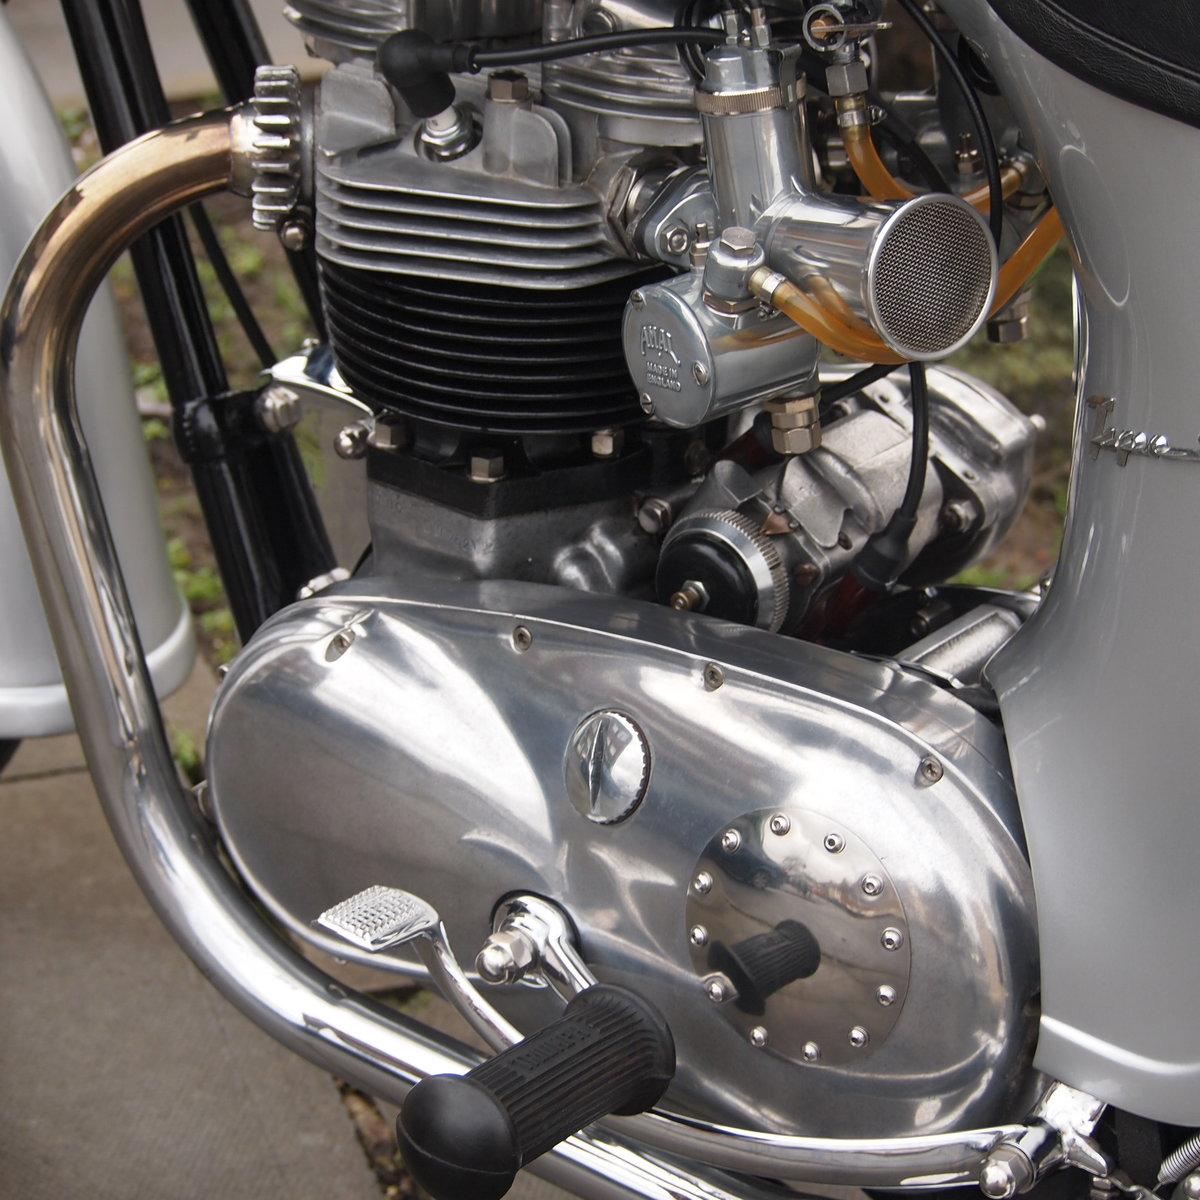 1961 Triumph Tiger T110 650/750 It Goes Like a Rocket. For Sale (picture 5 of 6)